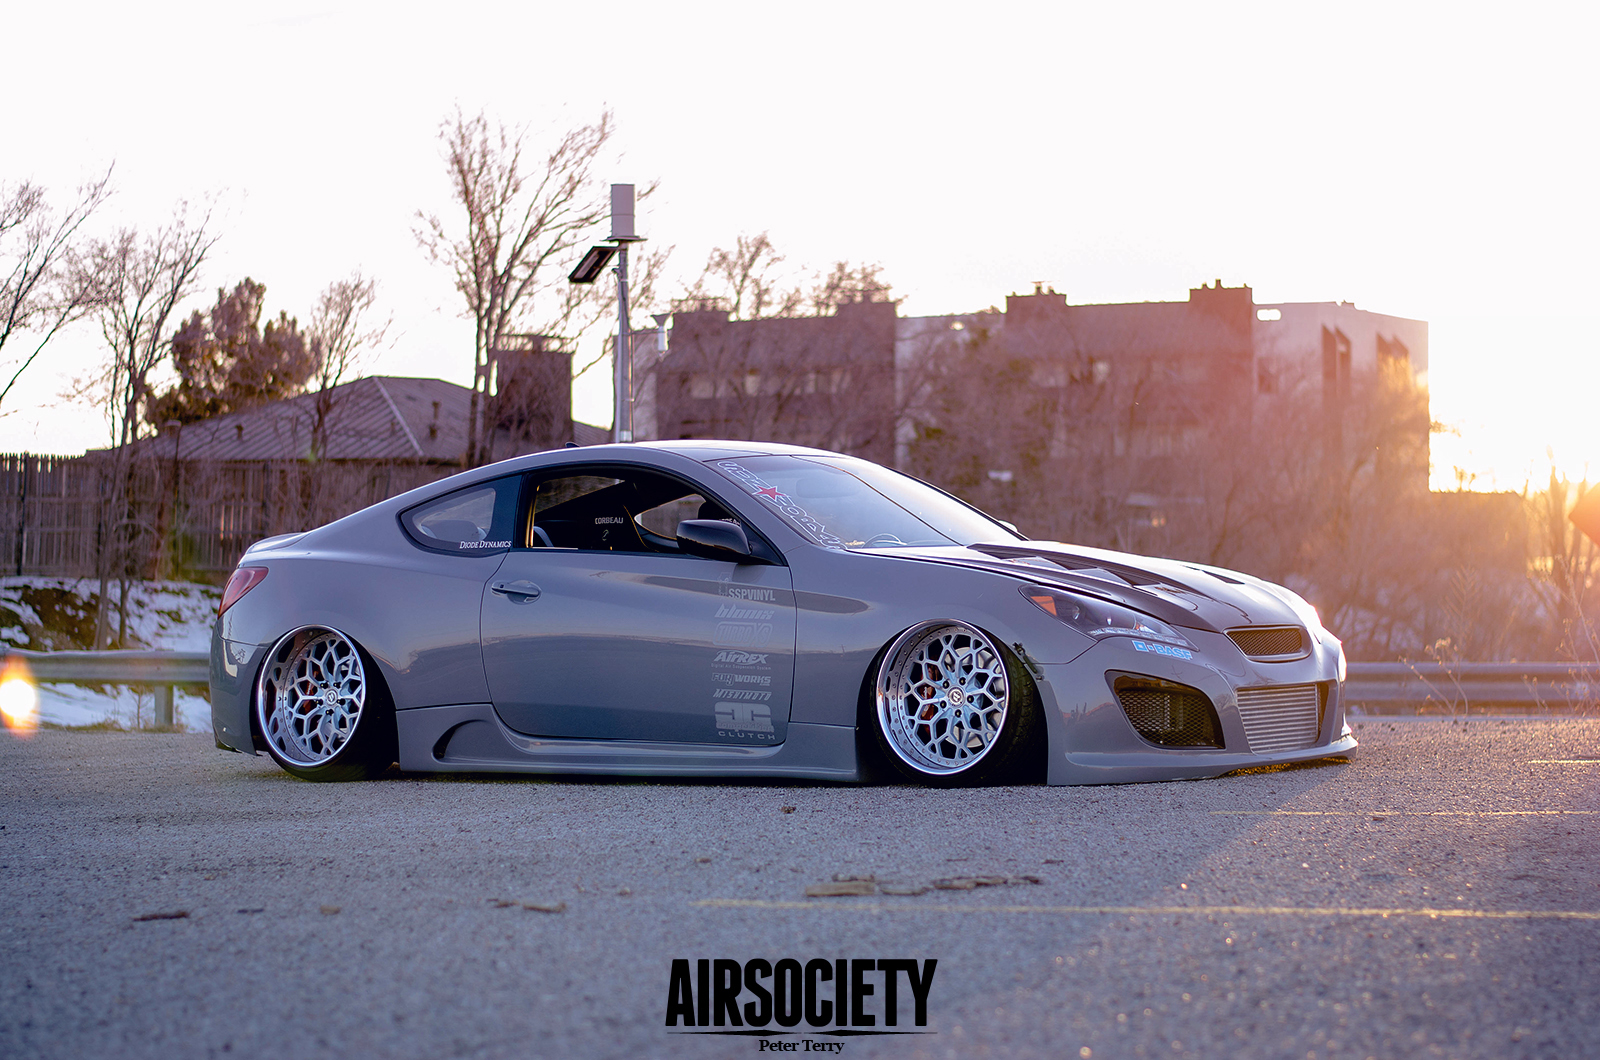 Gen Coupe photos via AirSociety